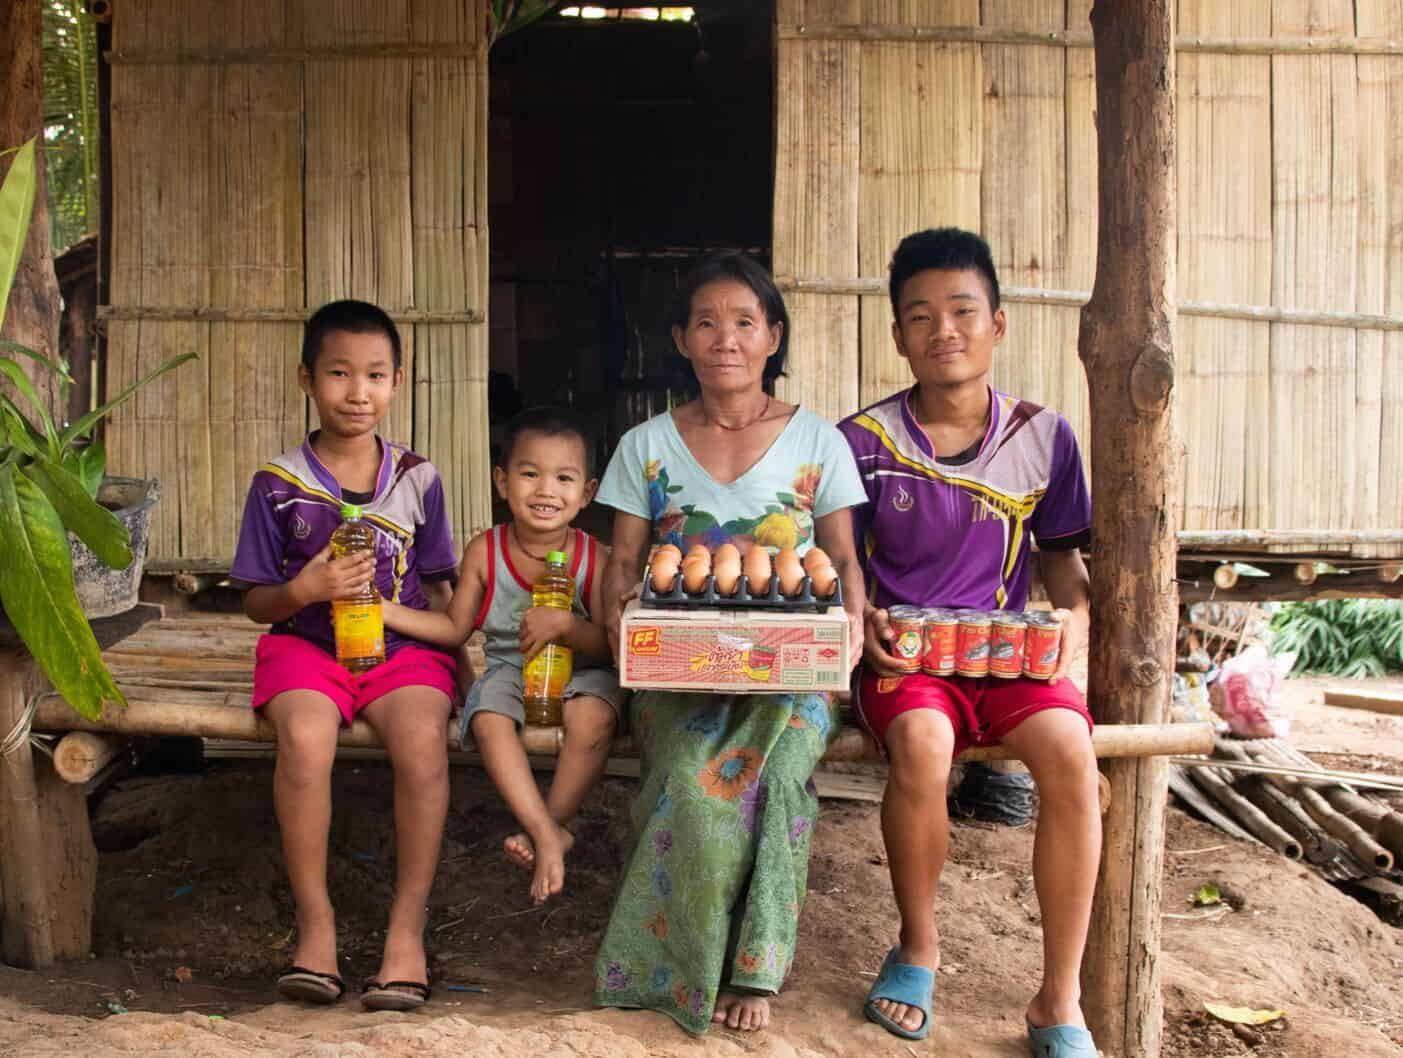 A woman and three children hold food in their laps.